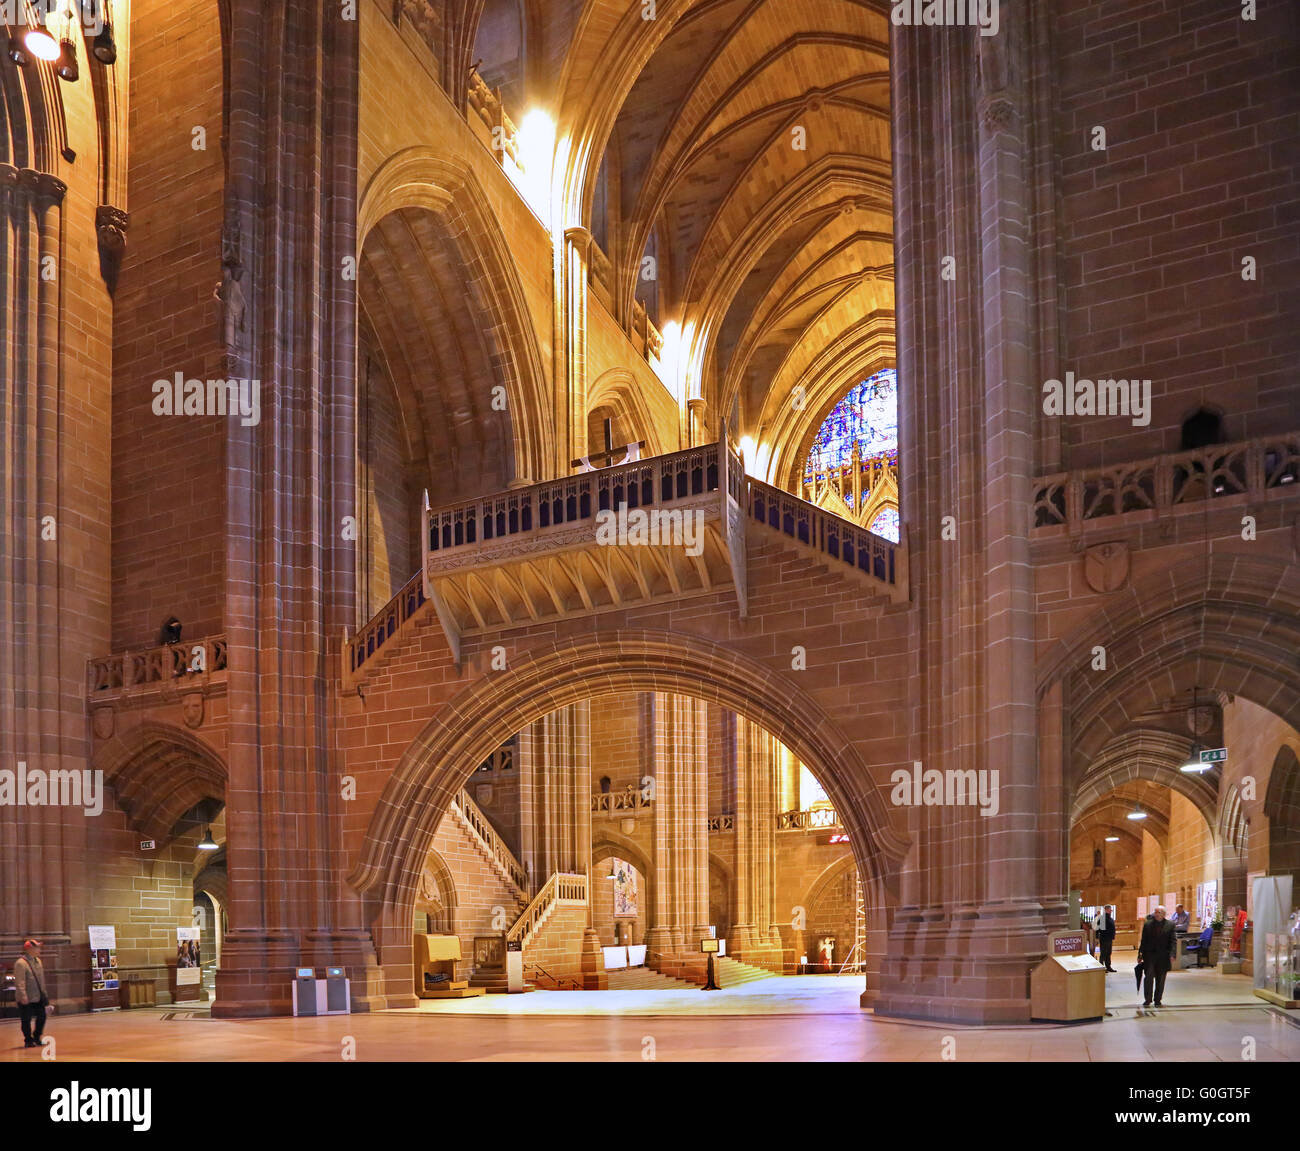 The Interior Of Liverpool Anglican Cathedral Showing Nave Bridge Built In Gothic Revival Style Completed 1978